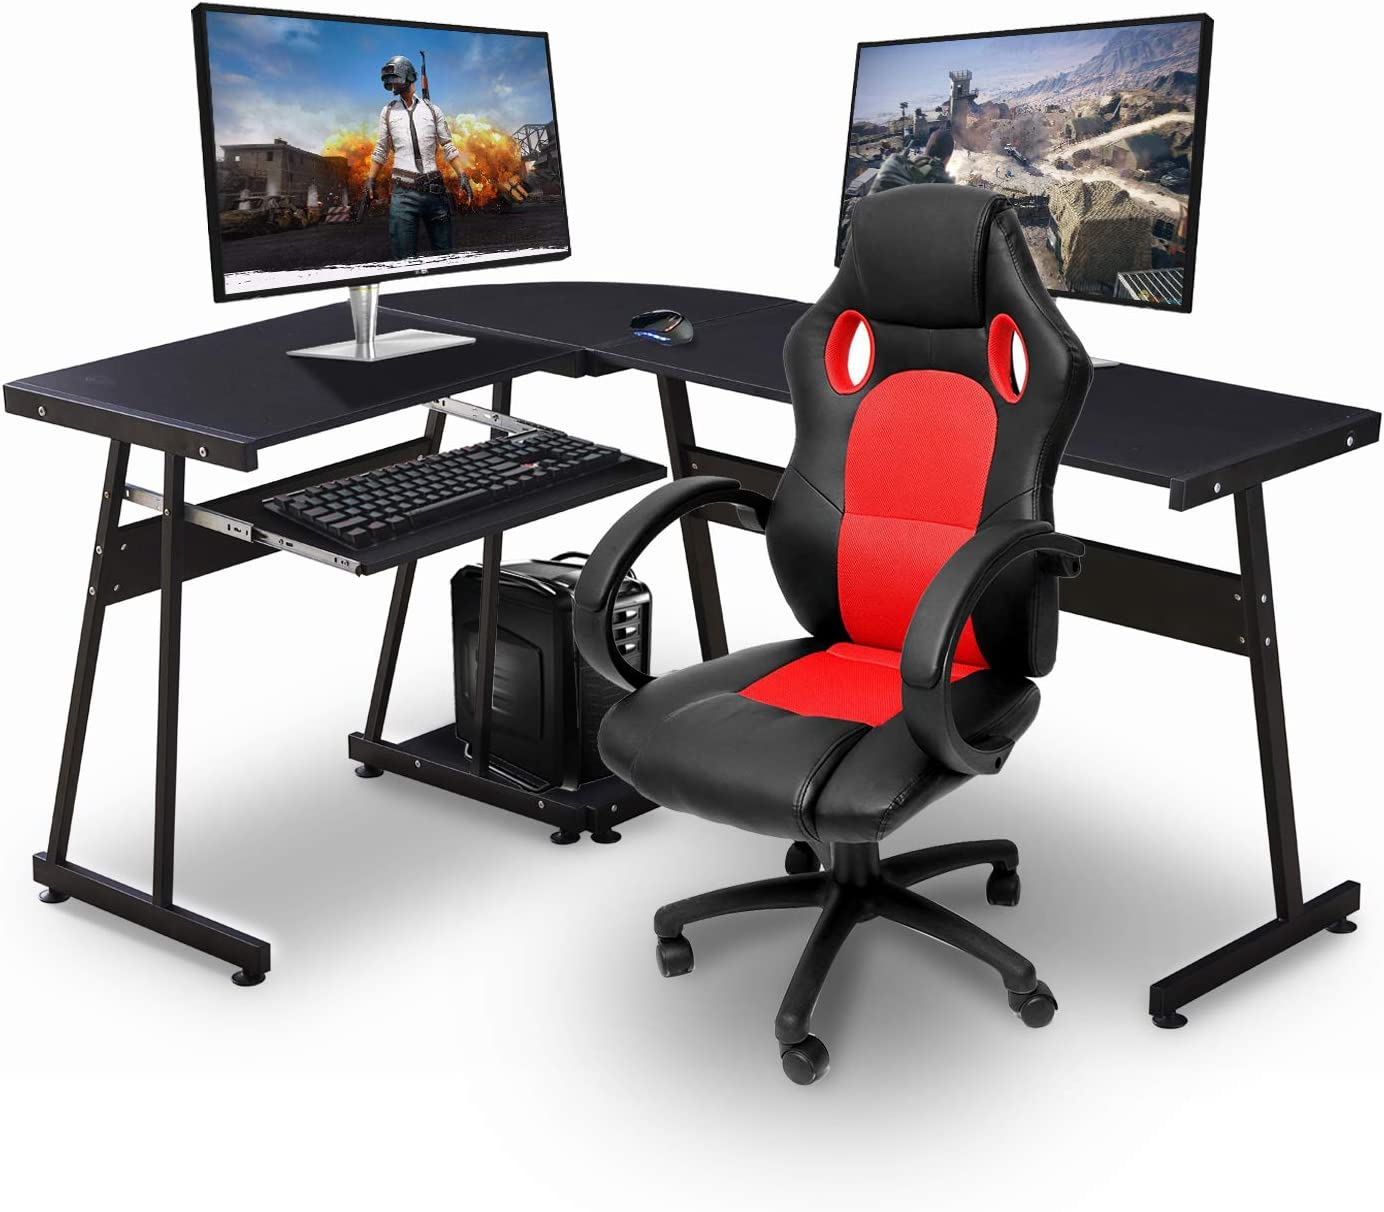 Amazon.com: Ivinta Reversible Black Gaming Desk Corner Desk Modern ...